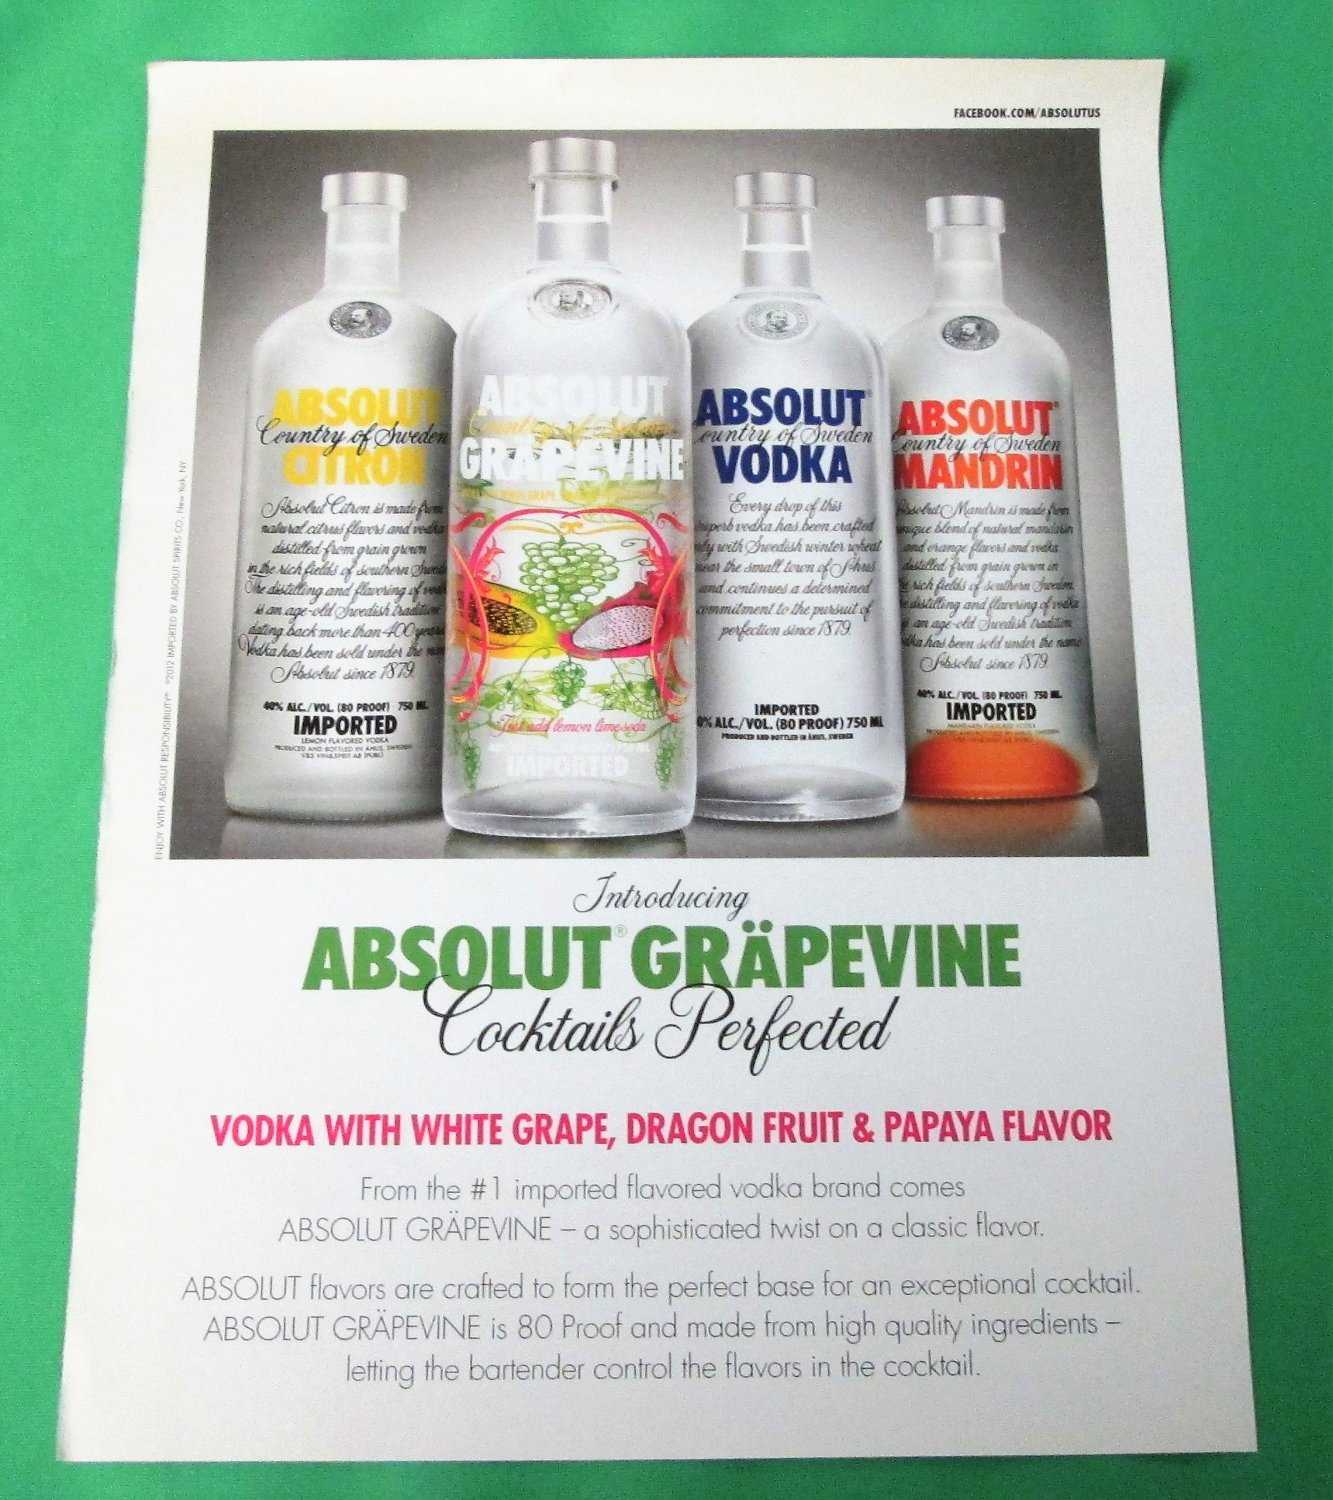 ABSOLUT GRAPEVINE Vodka Magazine Product Launch Ad VERSION 2 - RARE!